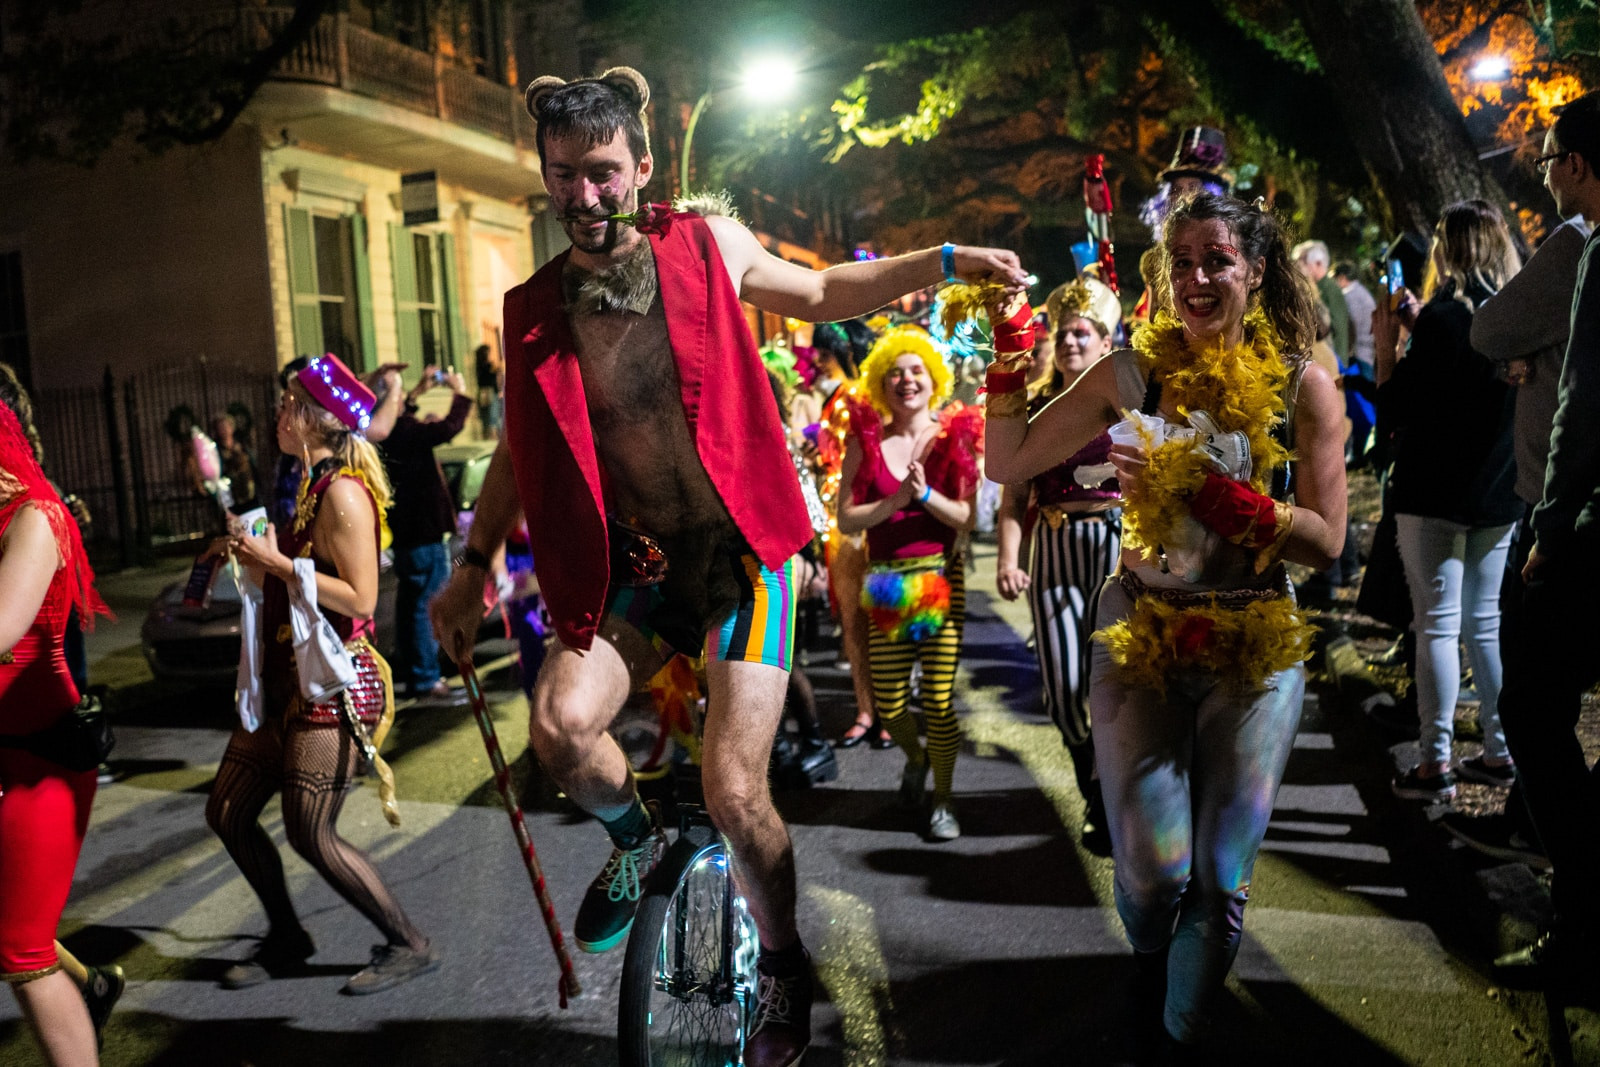 Boy riding a unicycle in the Krewe Boheme Mardi Gras parade in New Orleans